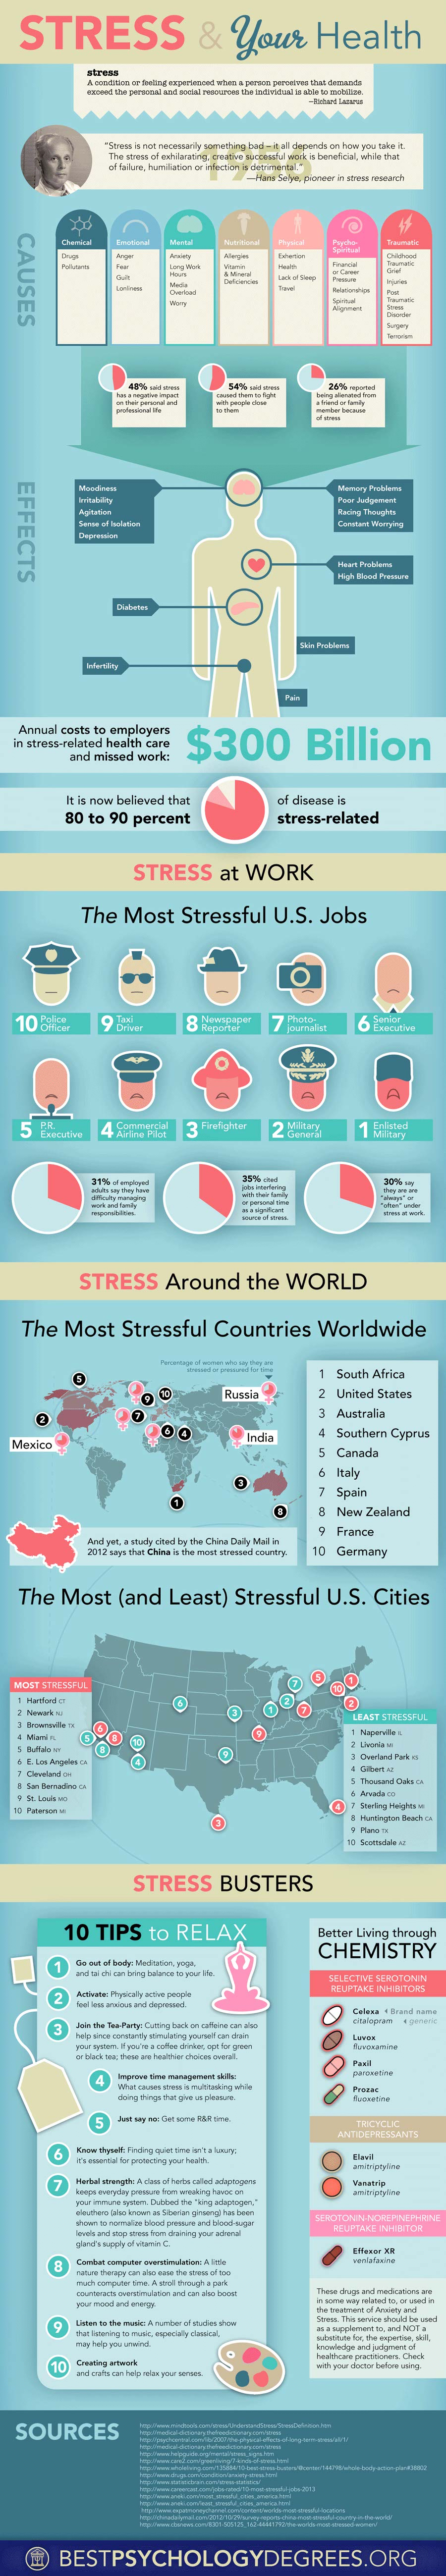 Dealing with Stress-Infographic